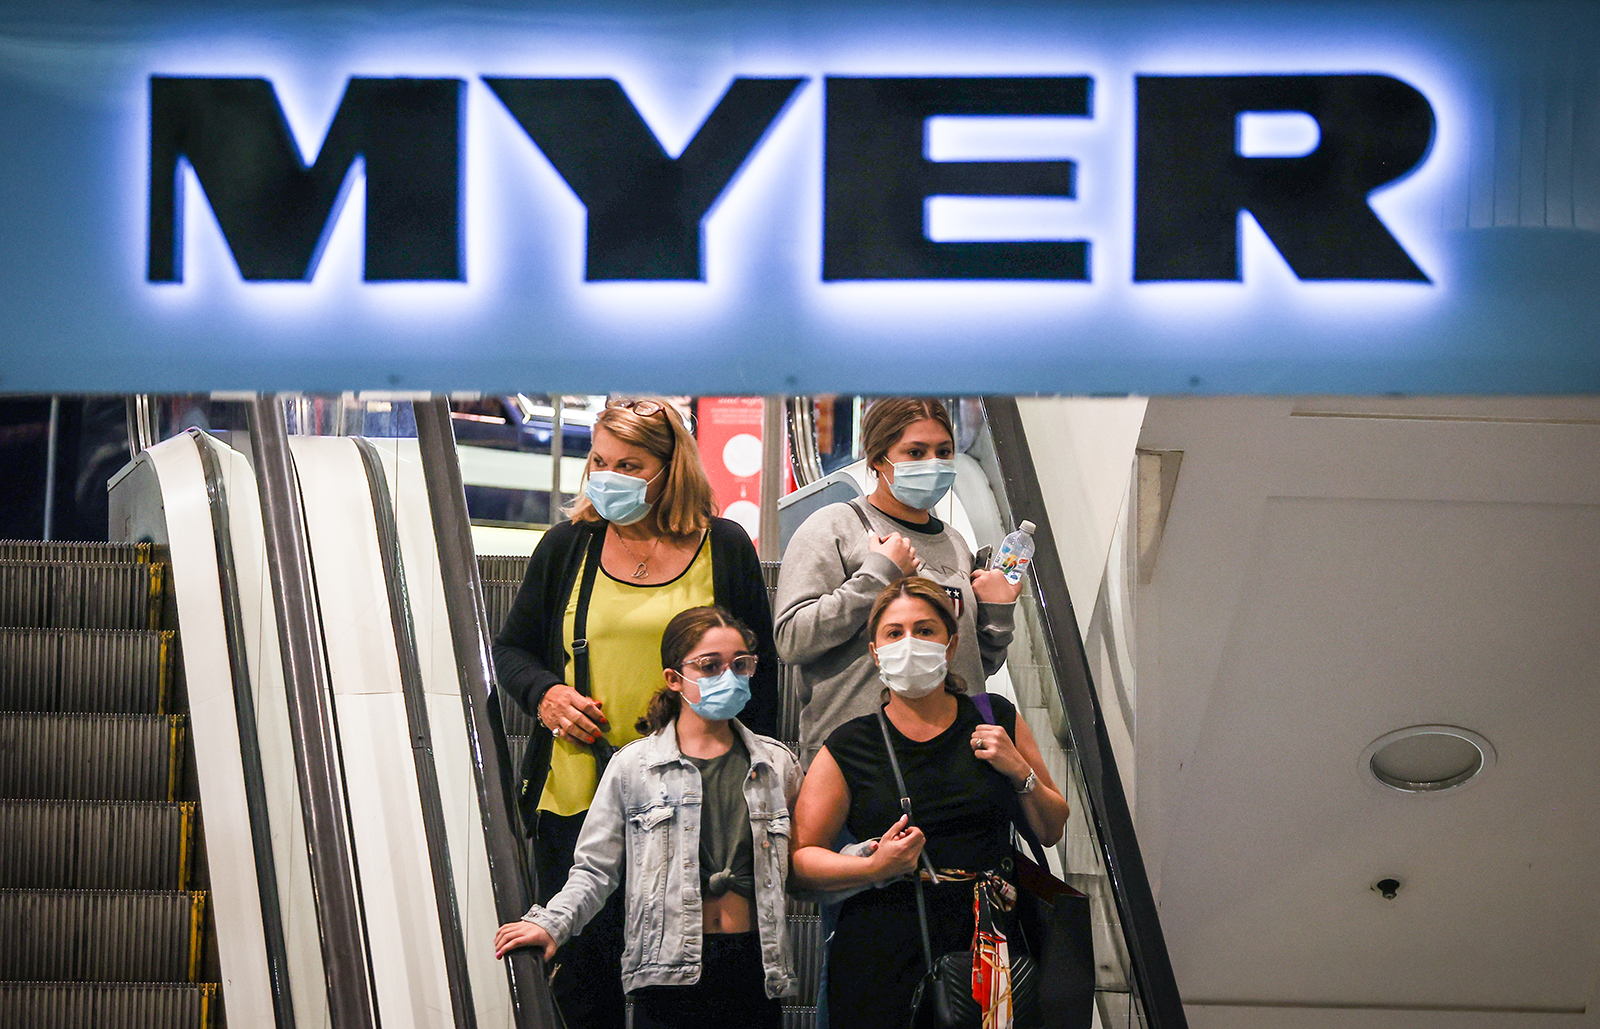 Shoppers wearing face masks ride an escalator as they exit the Myer store located in the Pitt Street Mall in Sydney, Australia, on December 26, 2020.